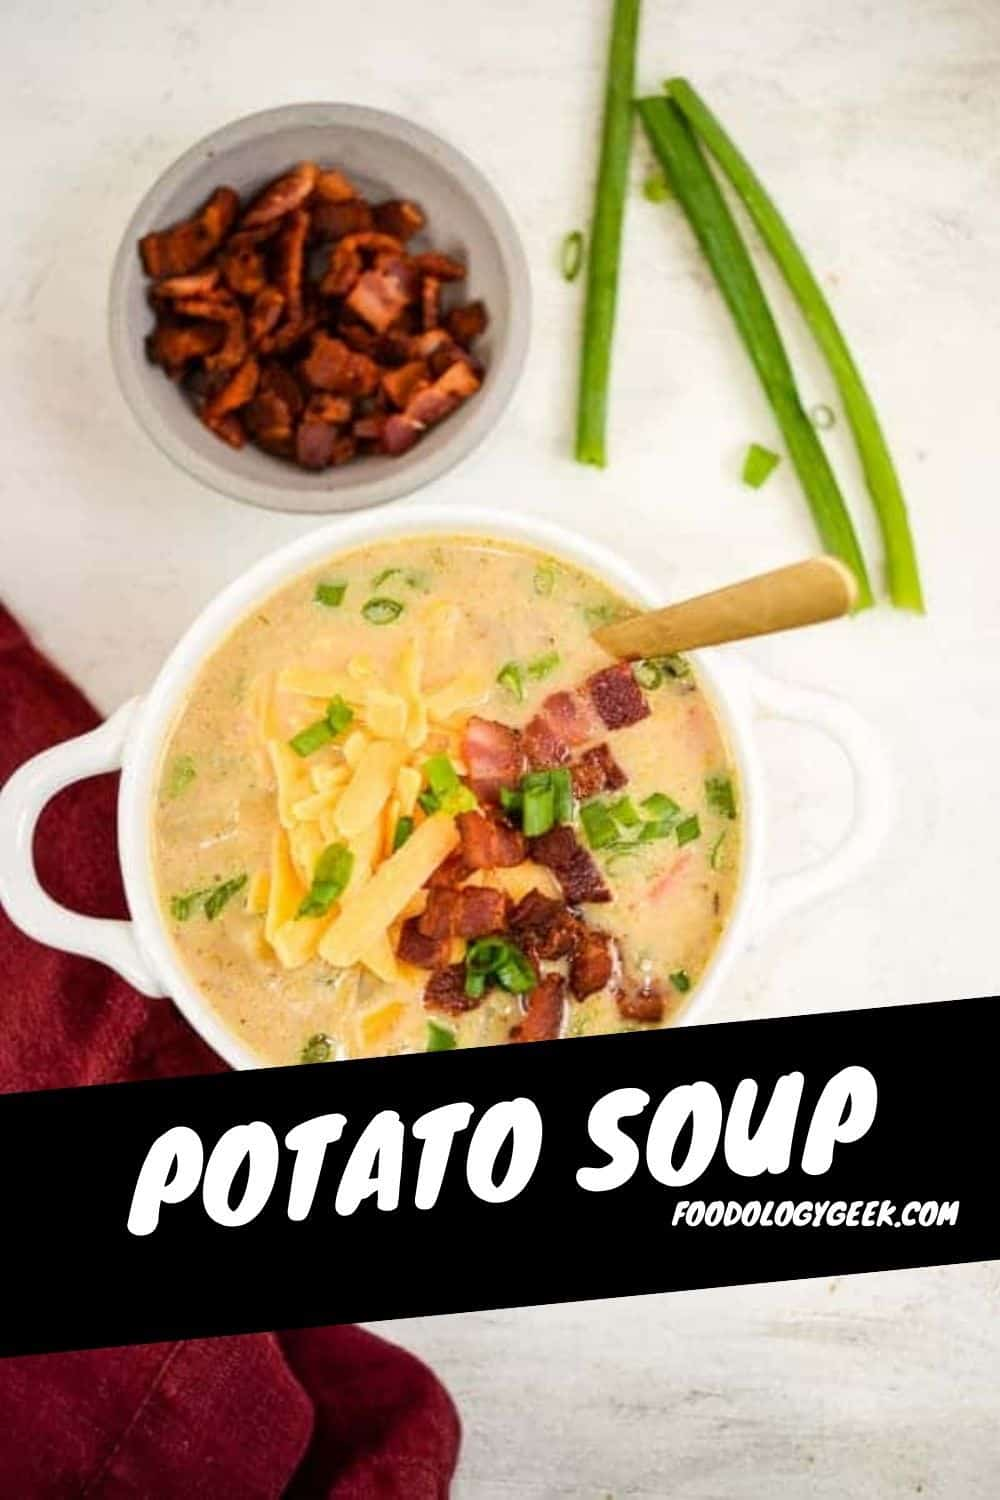 Easy potato soup recipe. Seriously the BEST POTATO SOUP on the internet. Serve it plain or fully loaded. Either way this soup is serious comfort food!